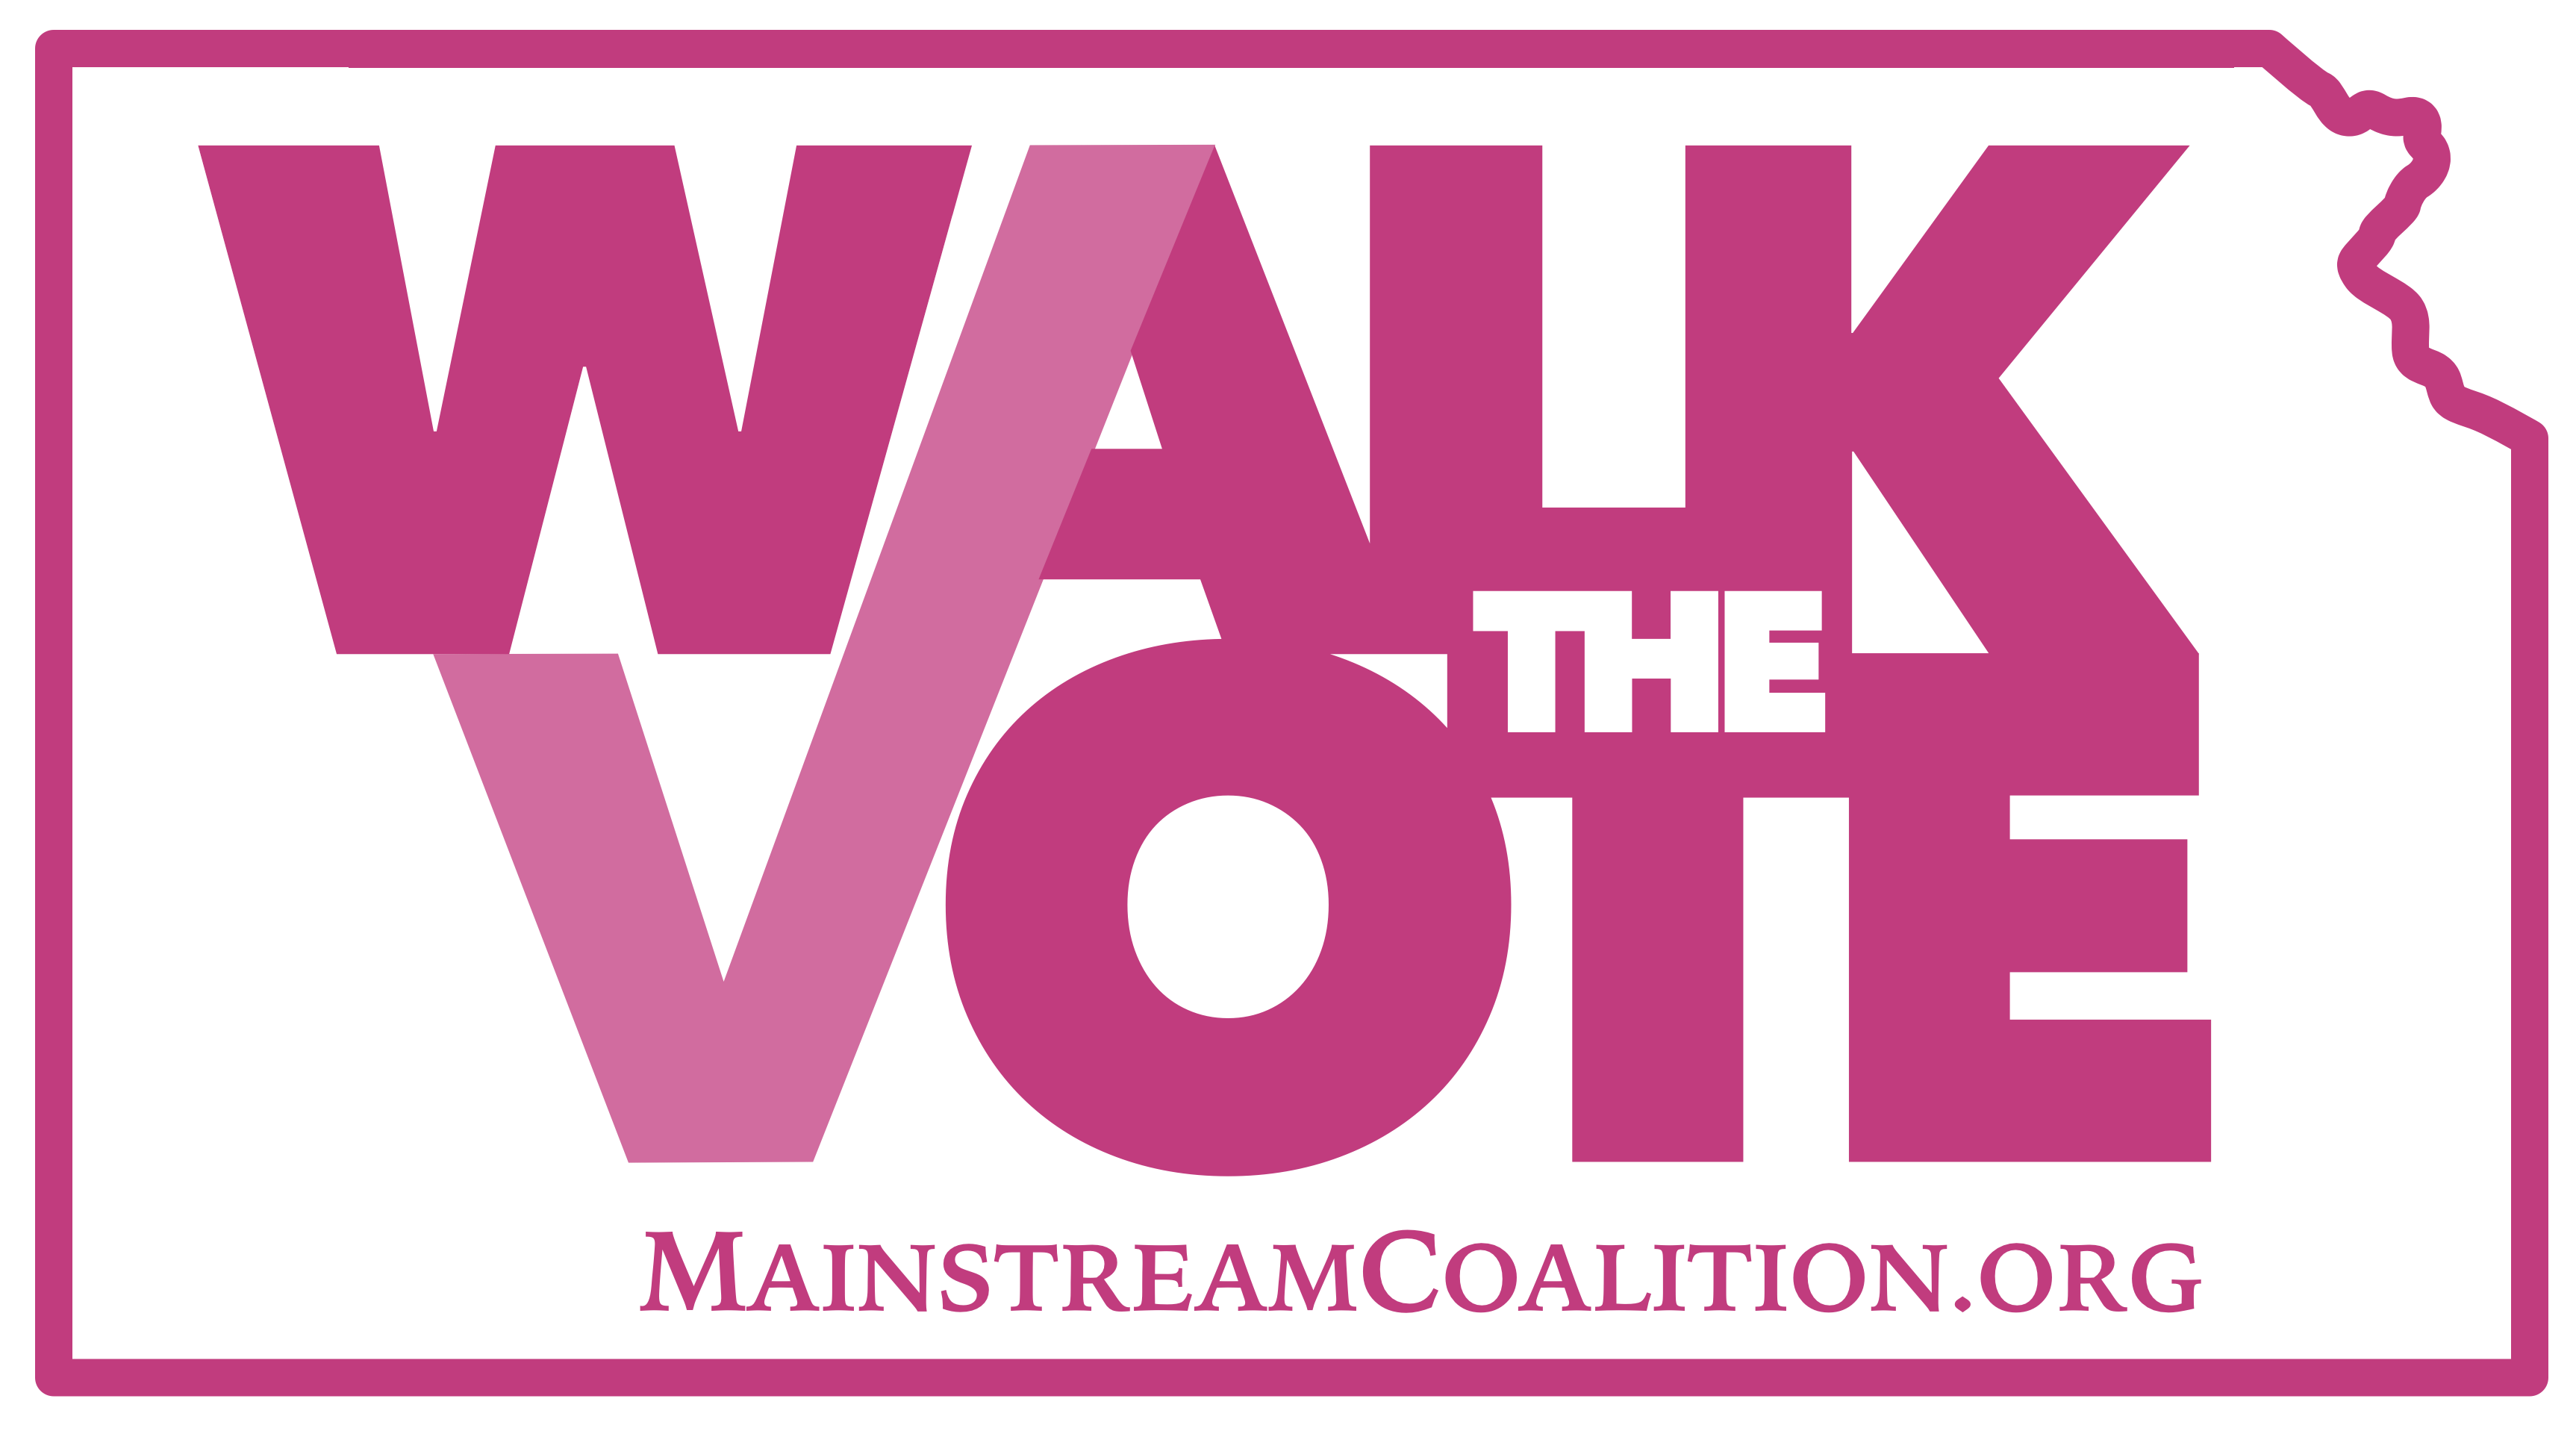 Walk the Vote logo in Kansas outline